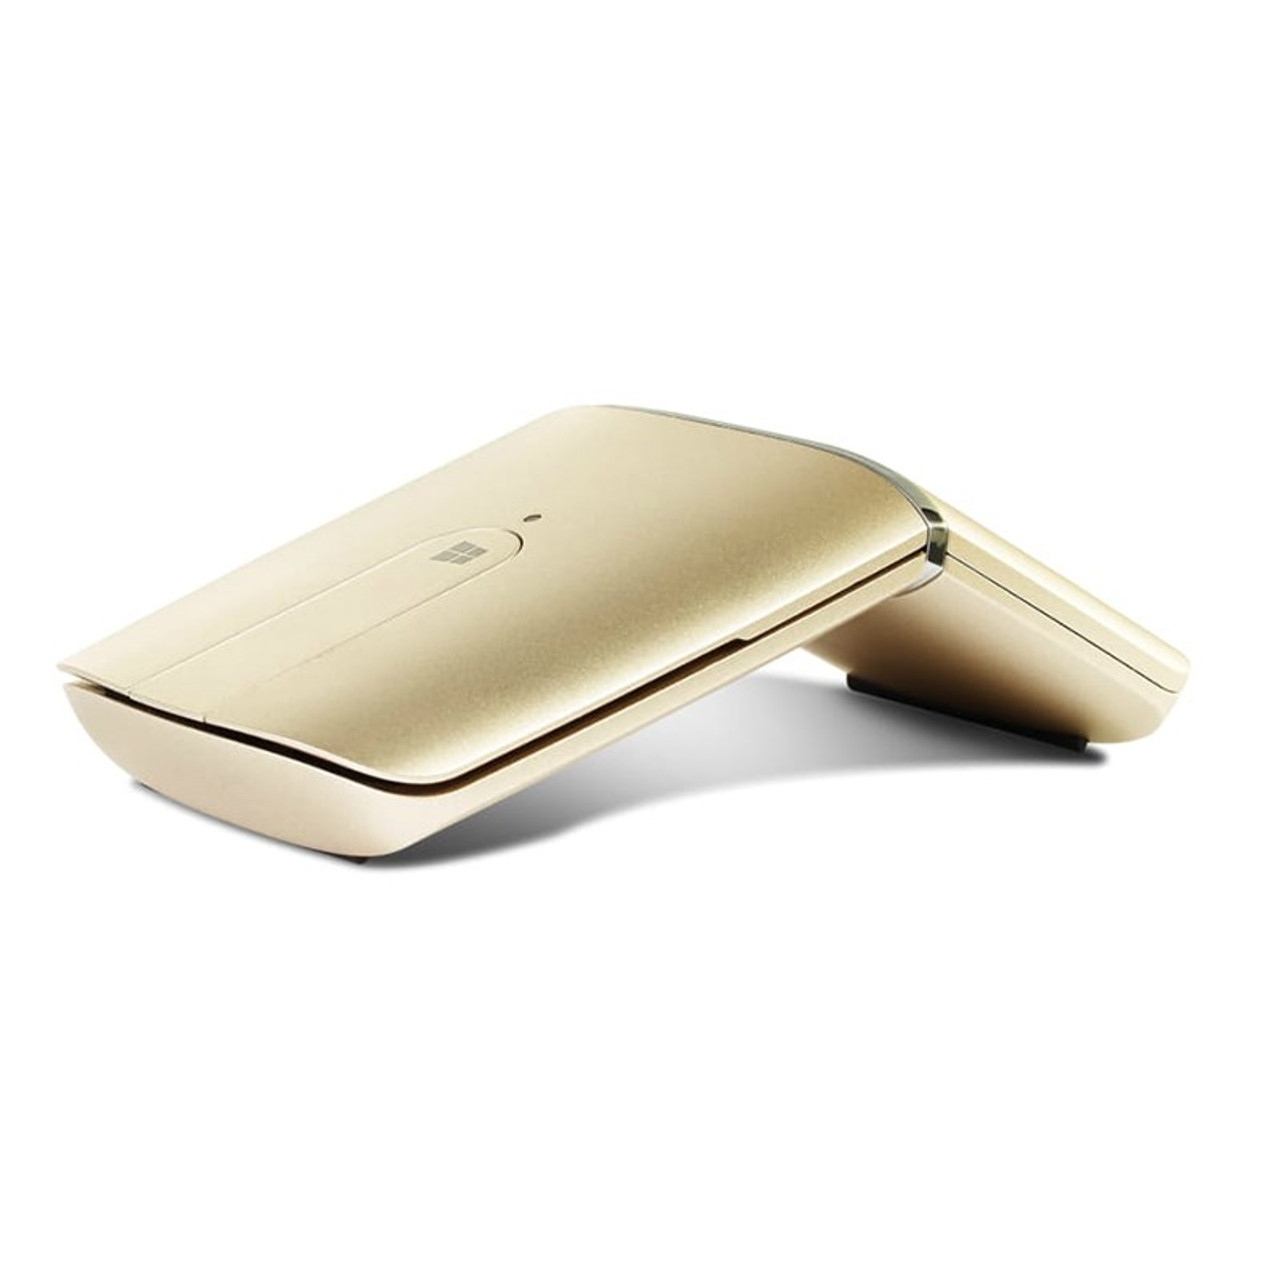 Image for Lenovo Yoga Wireless Optical Mouse - Golden CX Computer Superstore